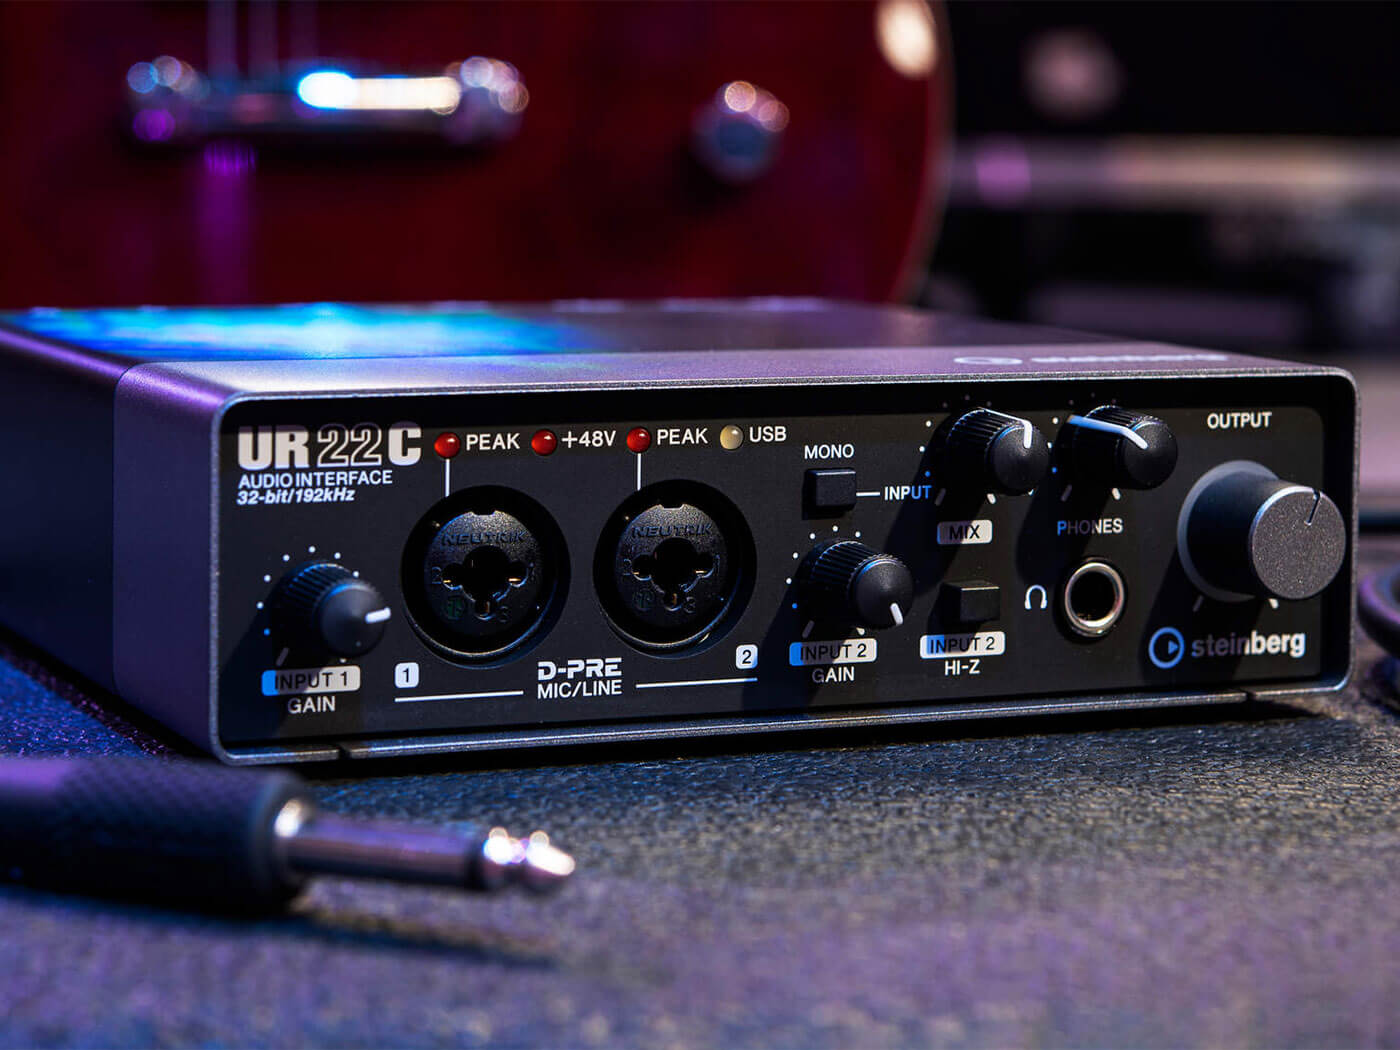 Best Audio Interface 2021 The best recording gear for guitarists in 2020: 10 best audio